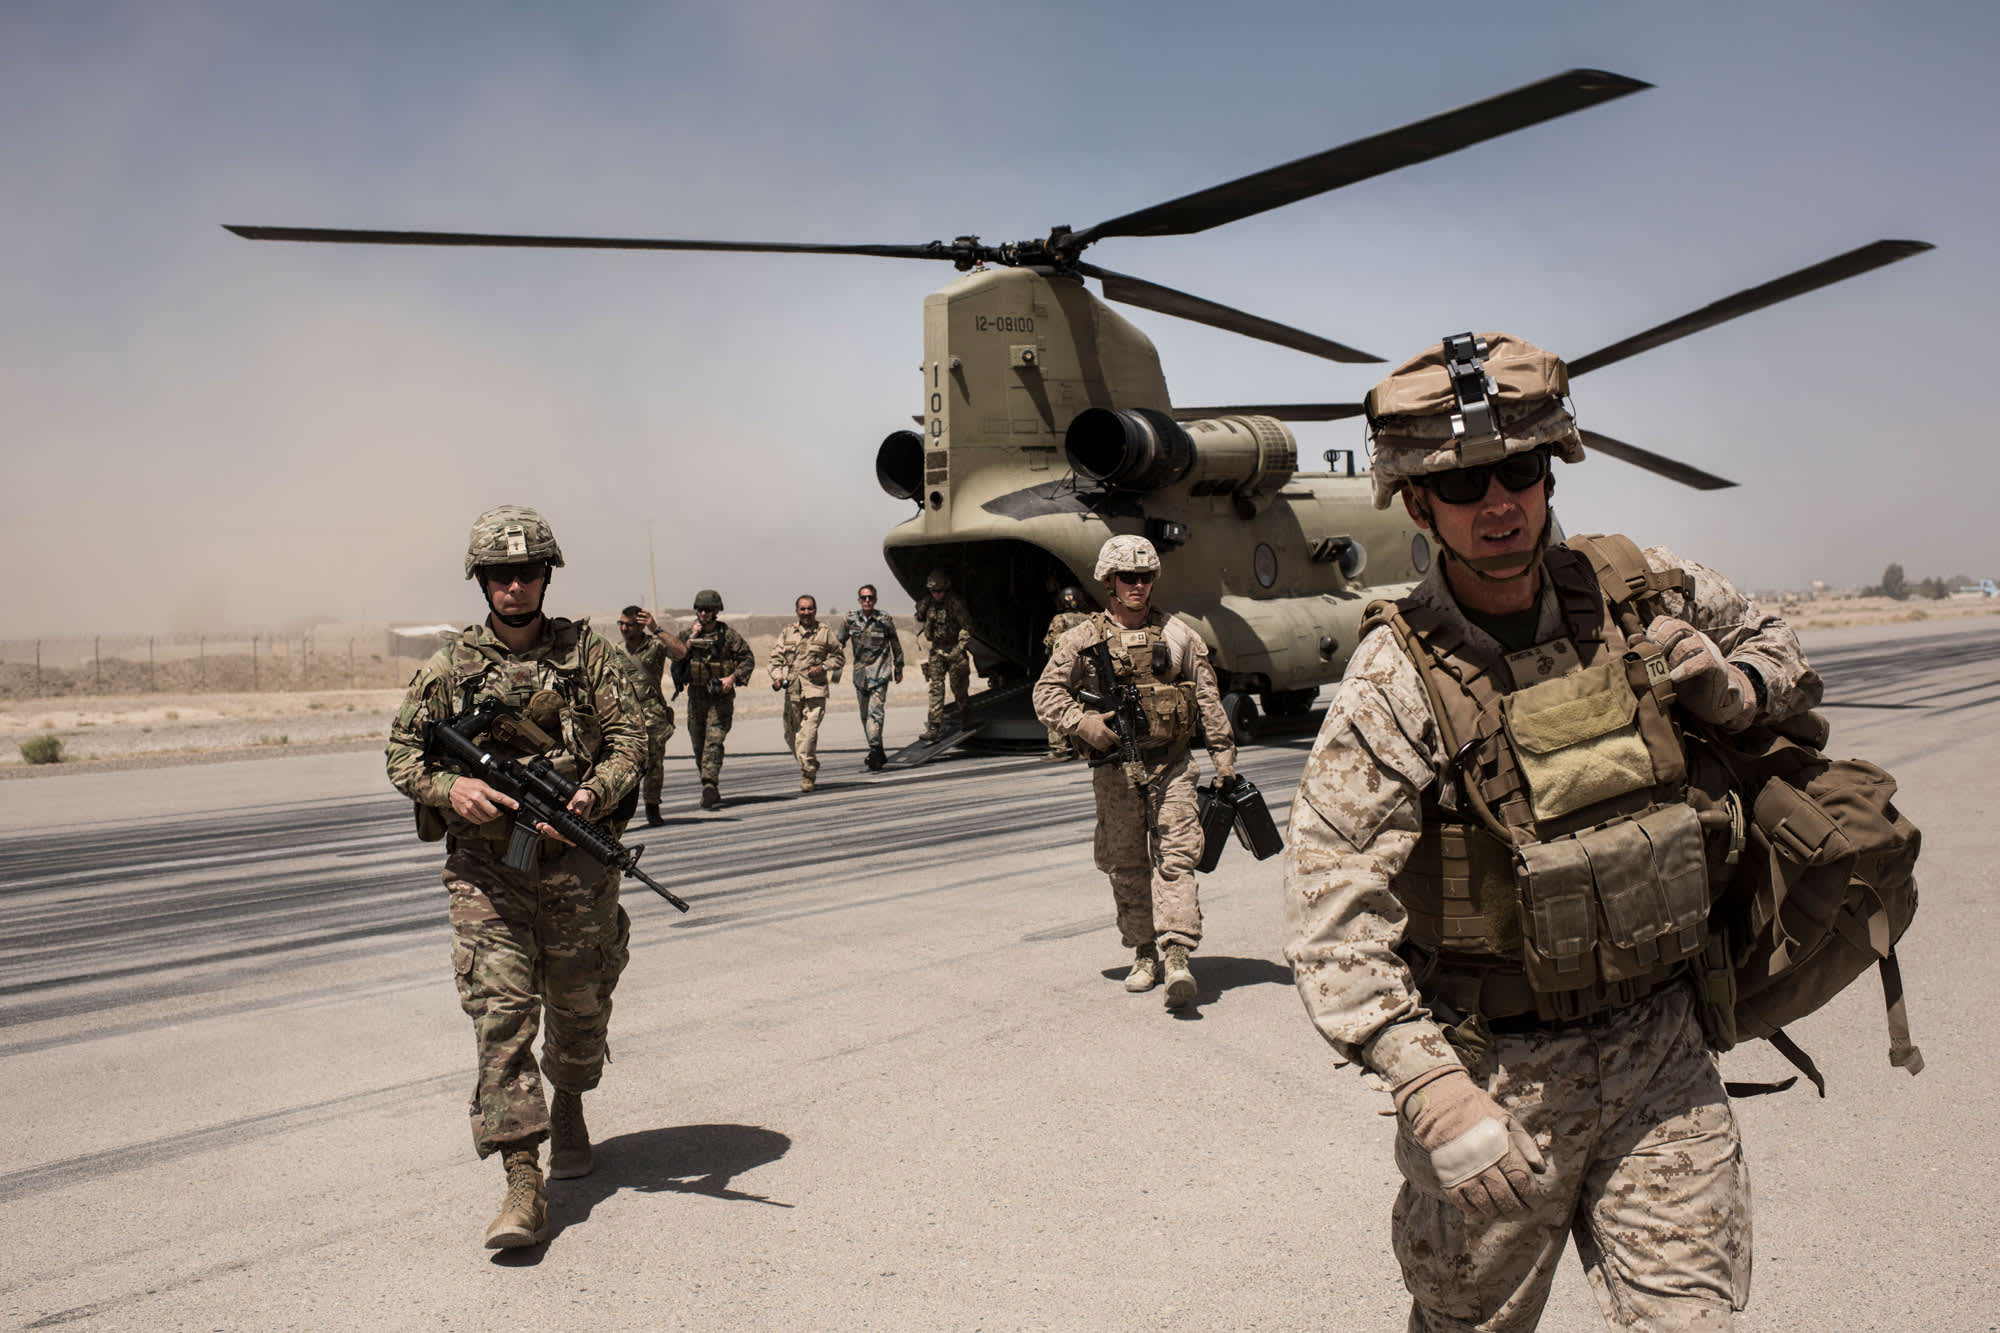 U.S. service members walk off a helicopter on the runway at Camp Bost in Helmand Province, Afghanistan.